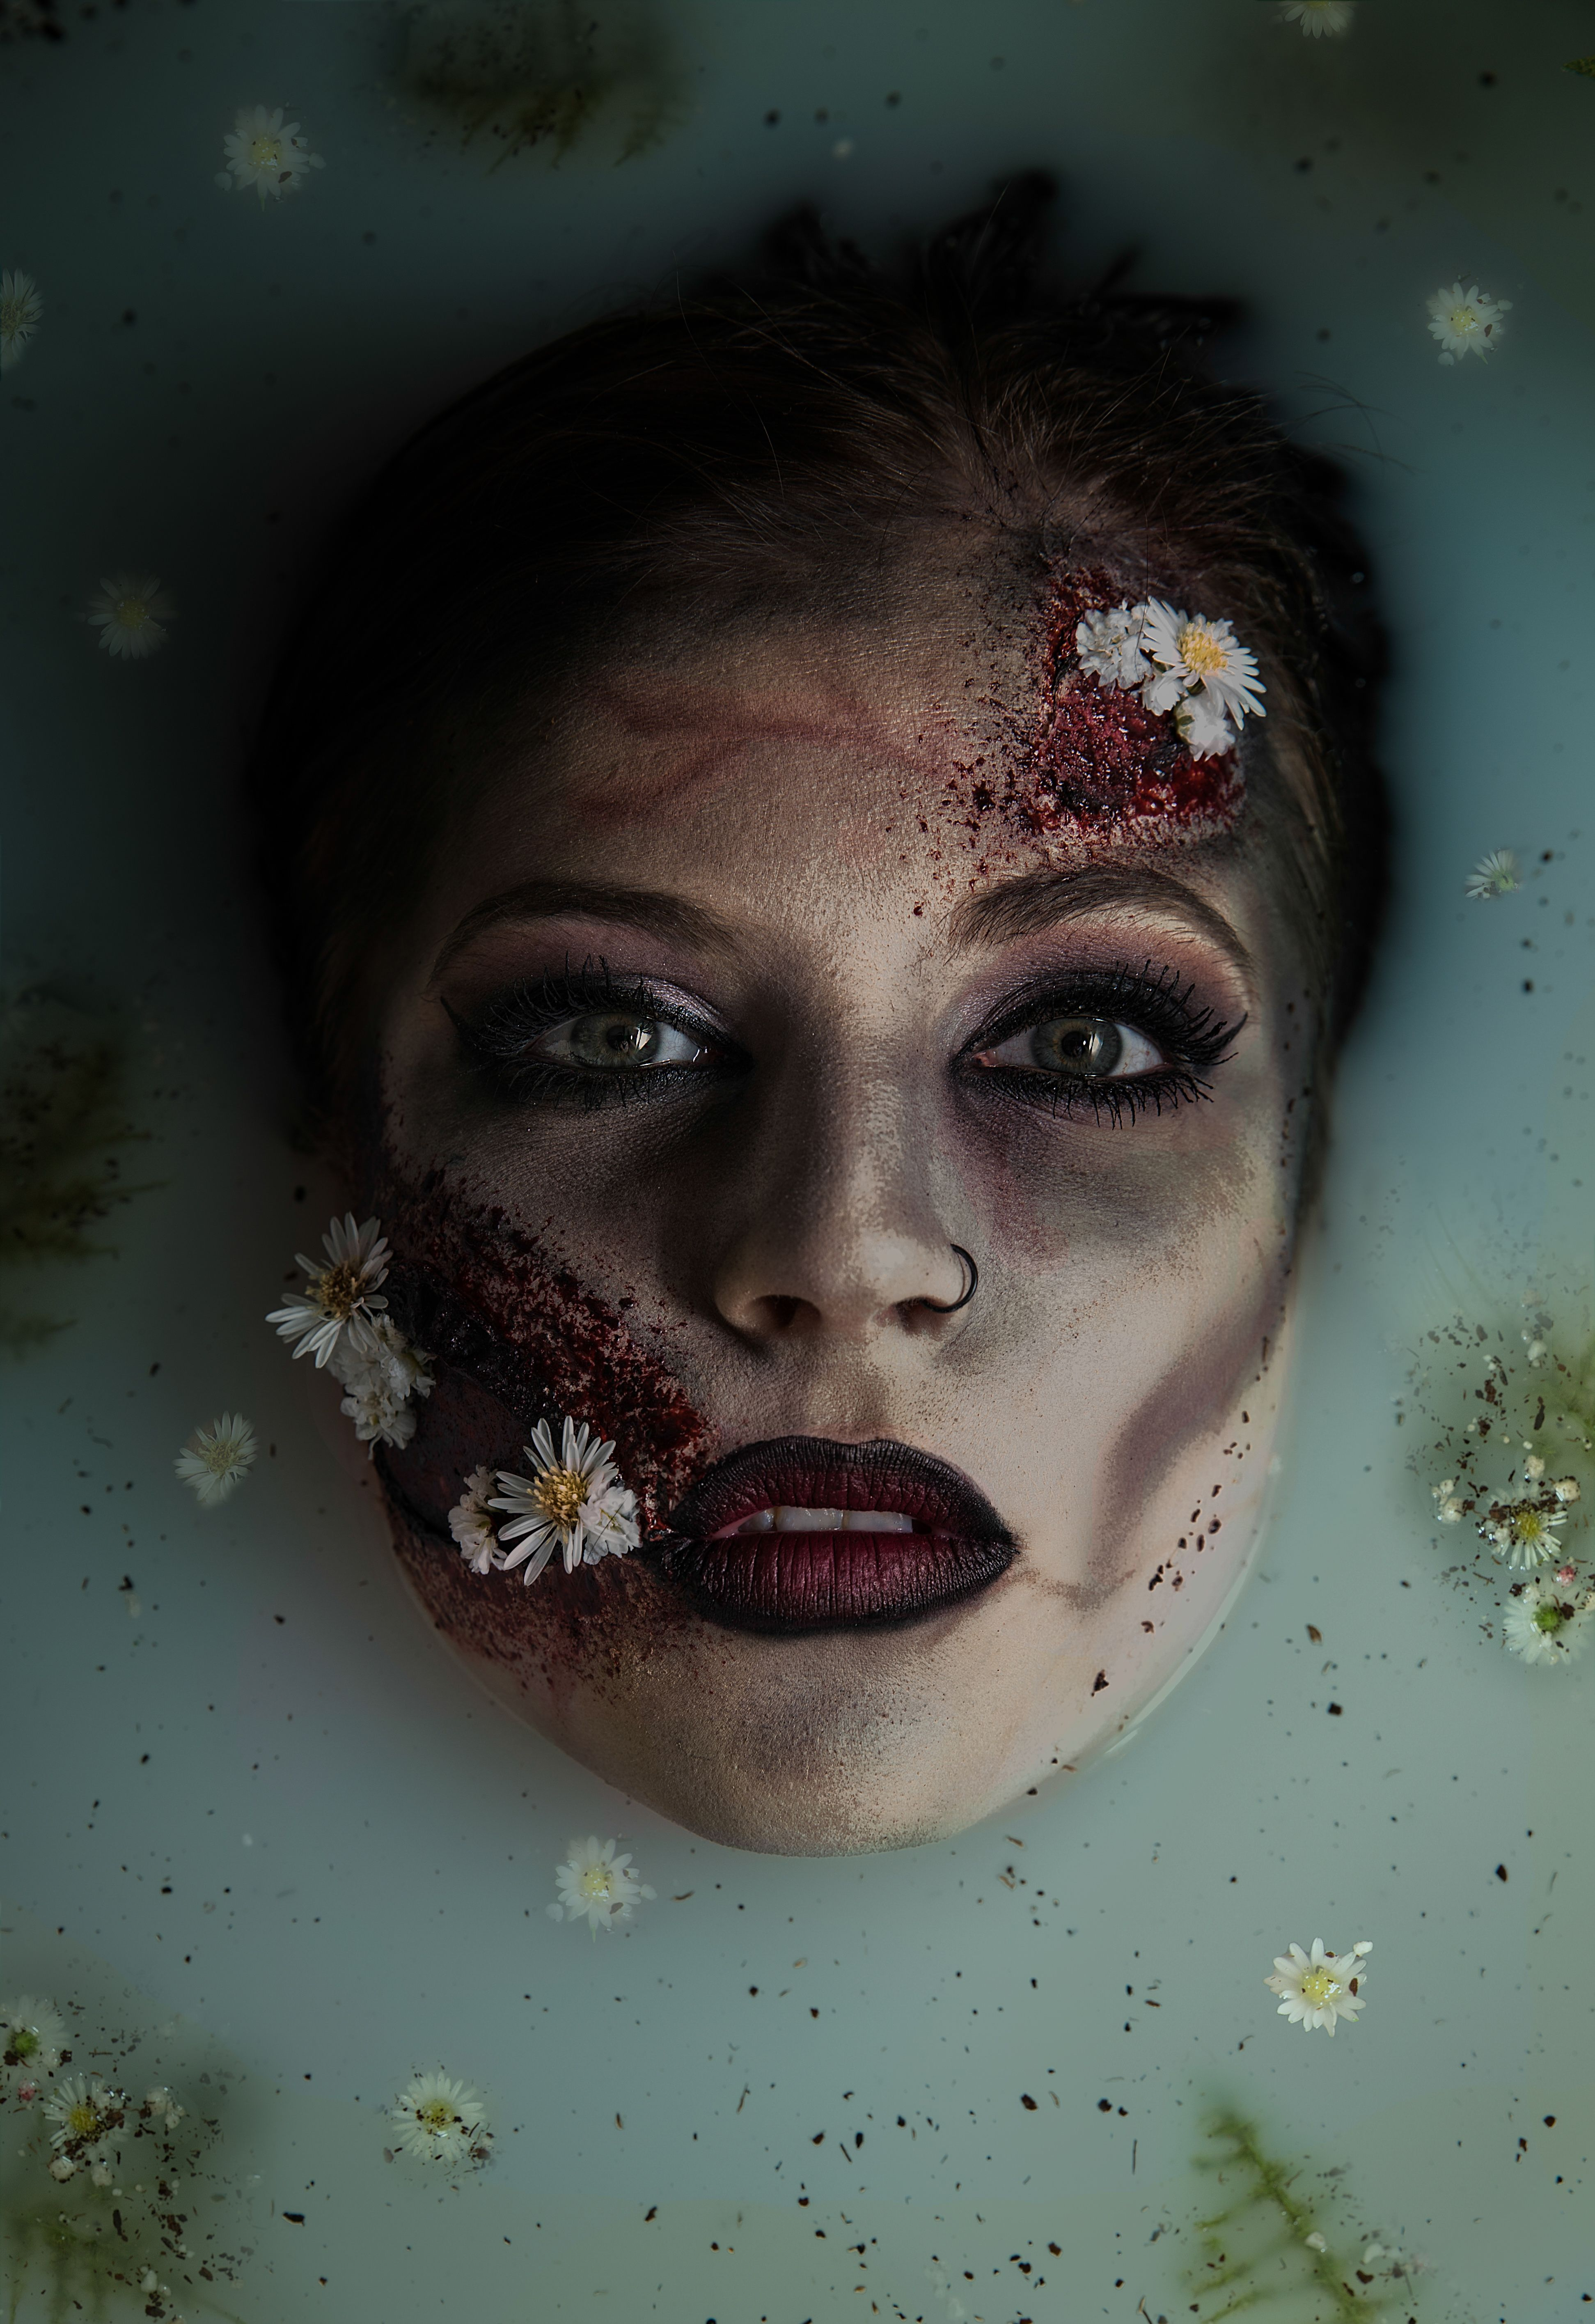 Zombie Milk Bath Milk Bath Photography Creepy Halloween Makeup Milk Bath